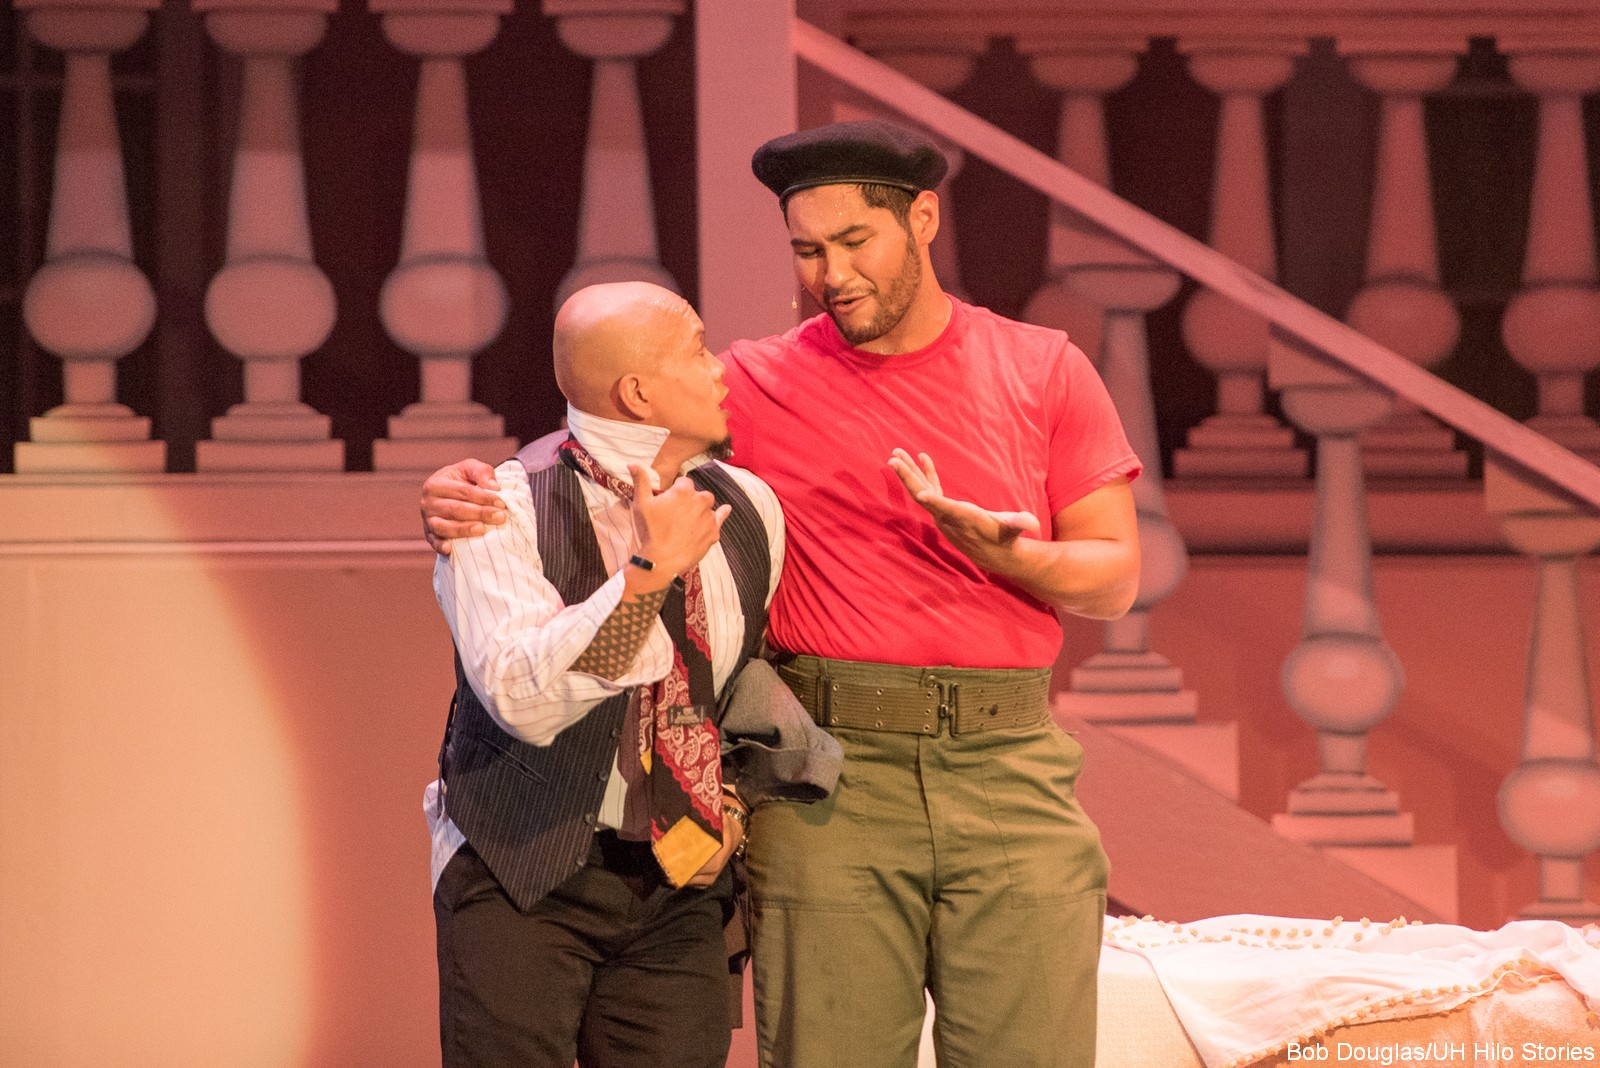 Two actors on stage conversing.